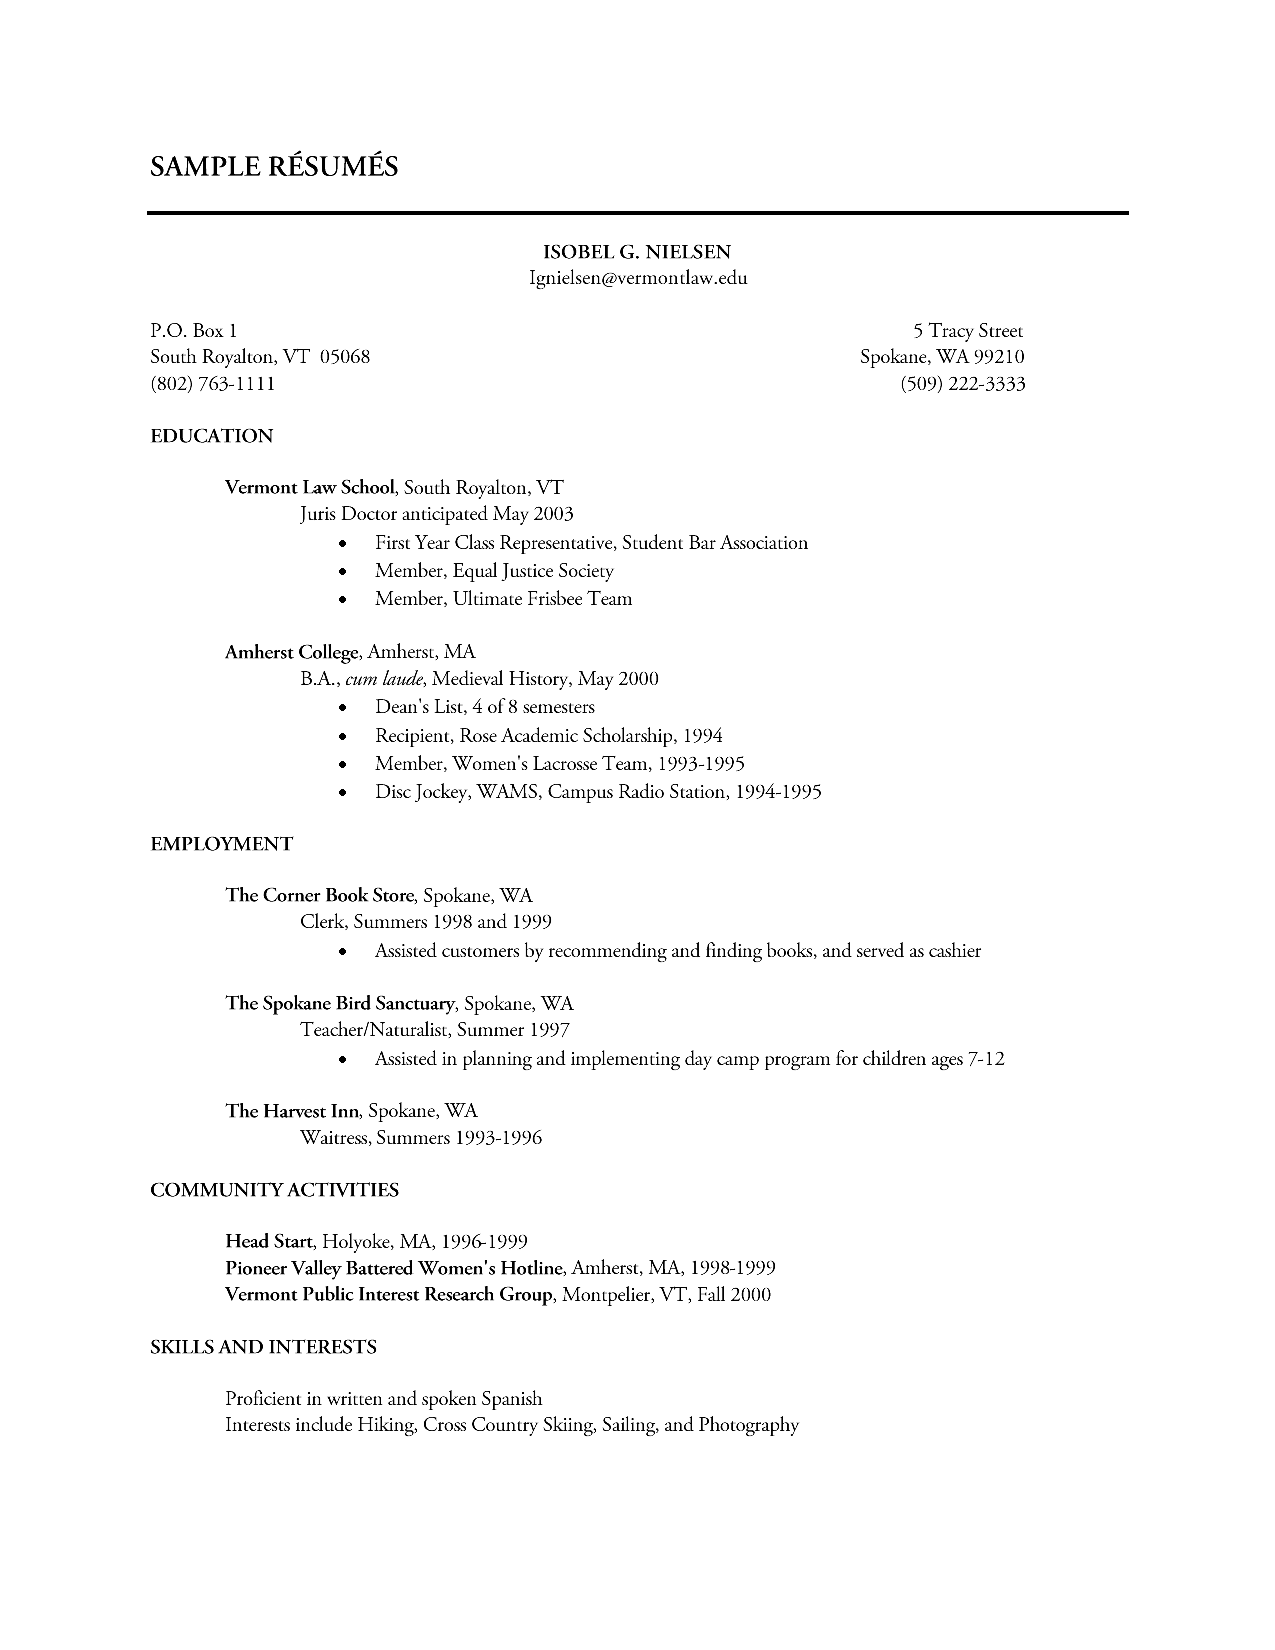 Sample Resume Showing Volunteer Work | Resume Sample Volunteer Ngo  Volunteer Resume Samples